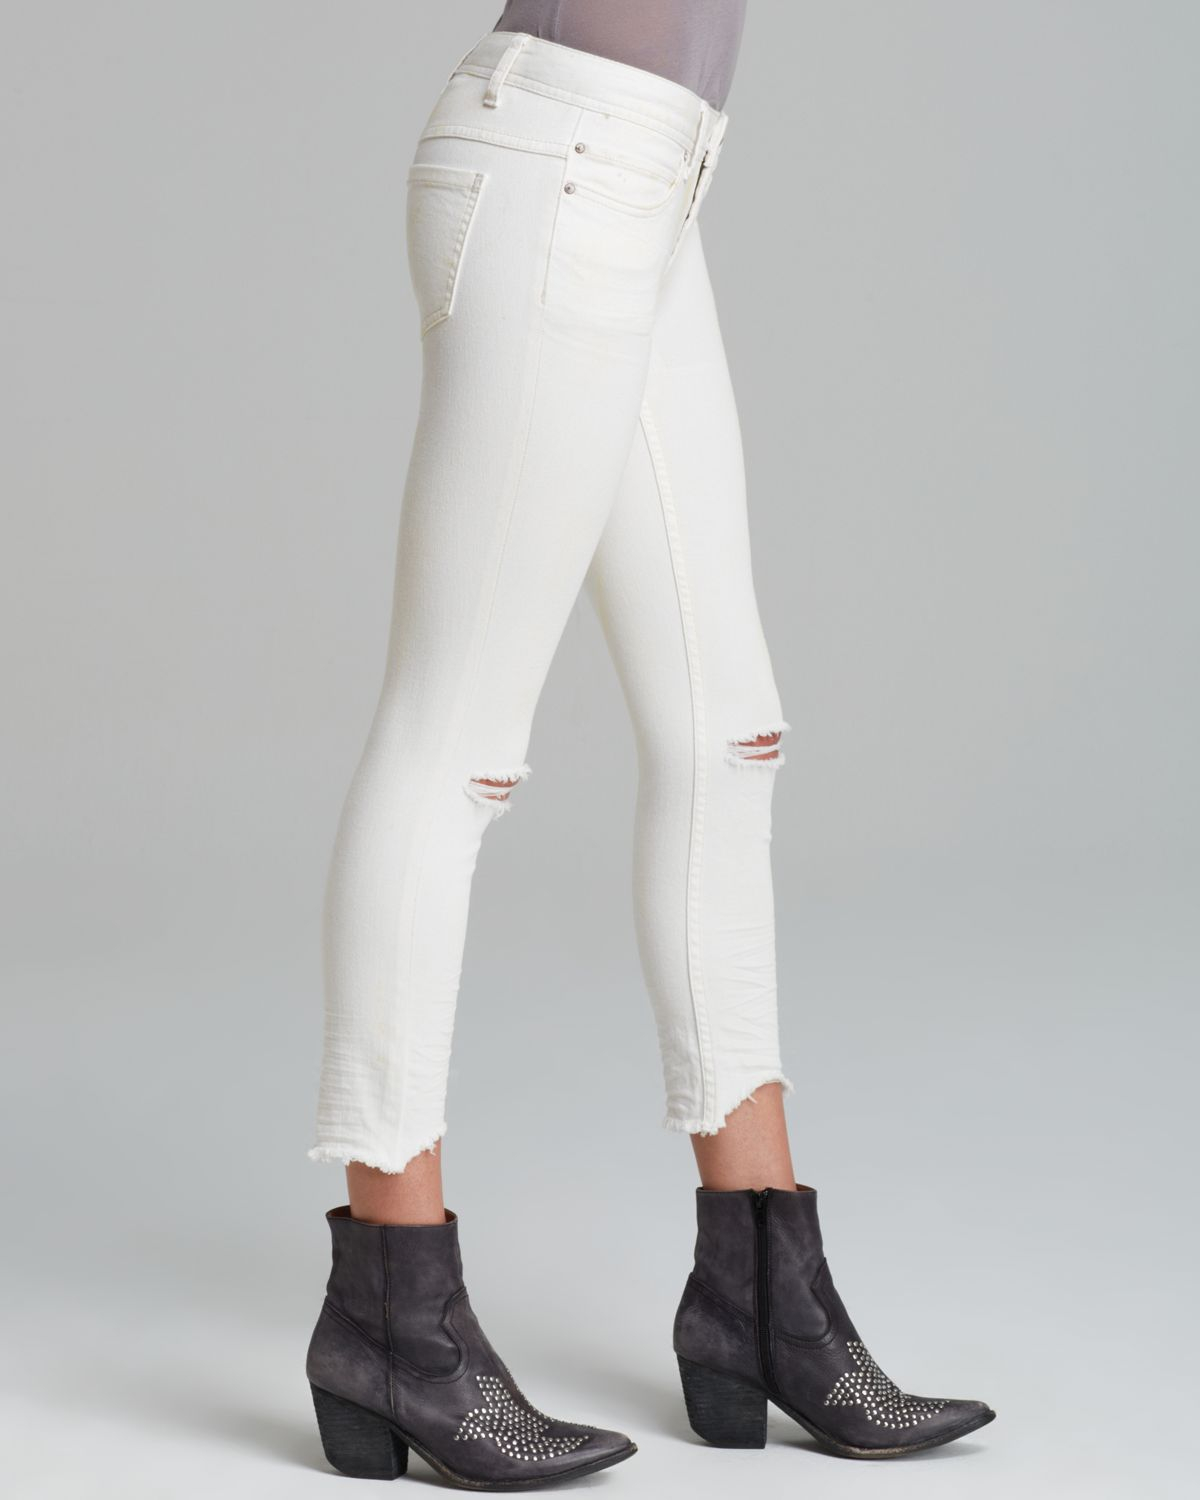 Gallery. Previously sold at: Bloomingdale's · Women's White Jeans - Free People Jeans - Skinny Destroyed Ankle In White In White Lyst